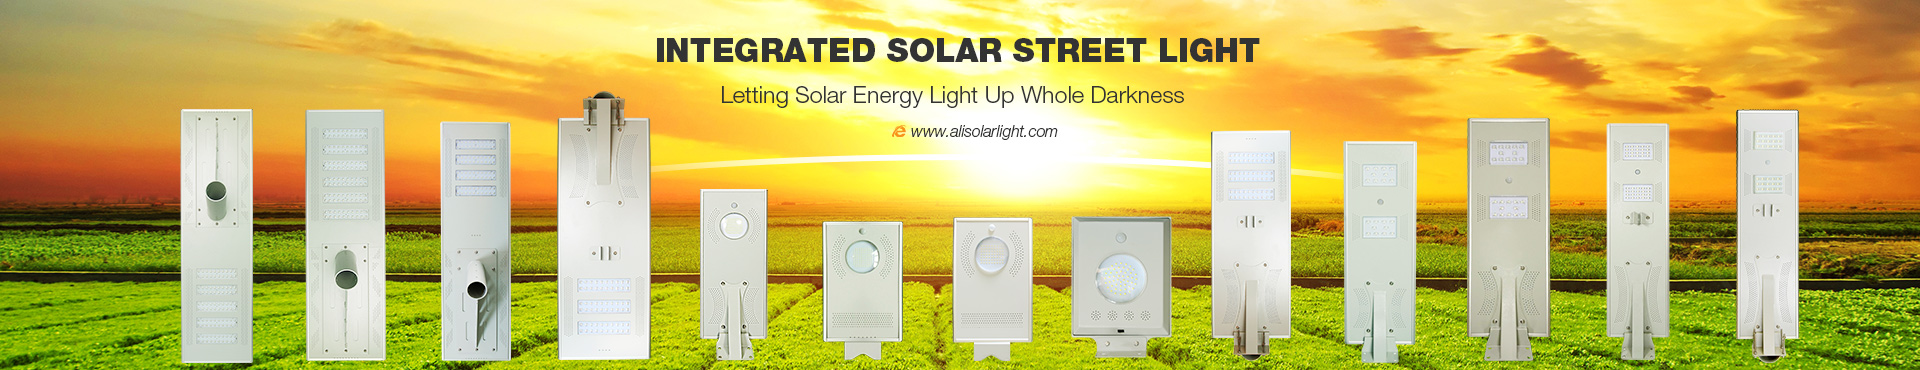 Al-CH Series All In One Solar Street Light